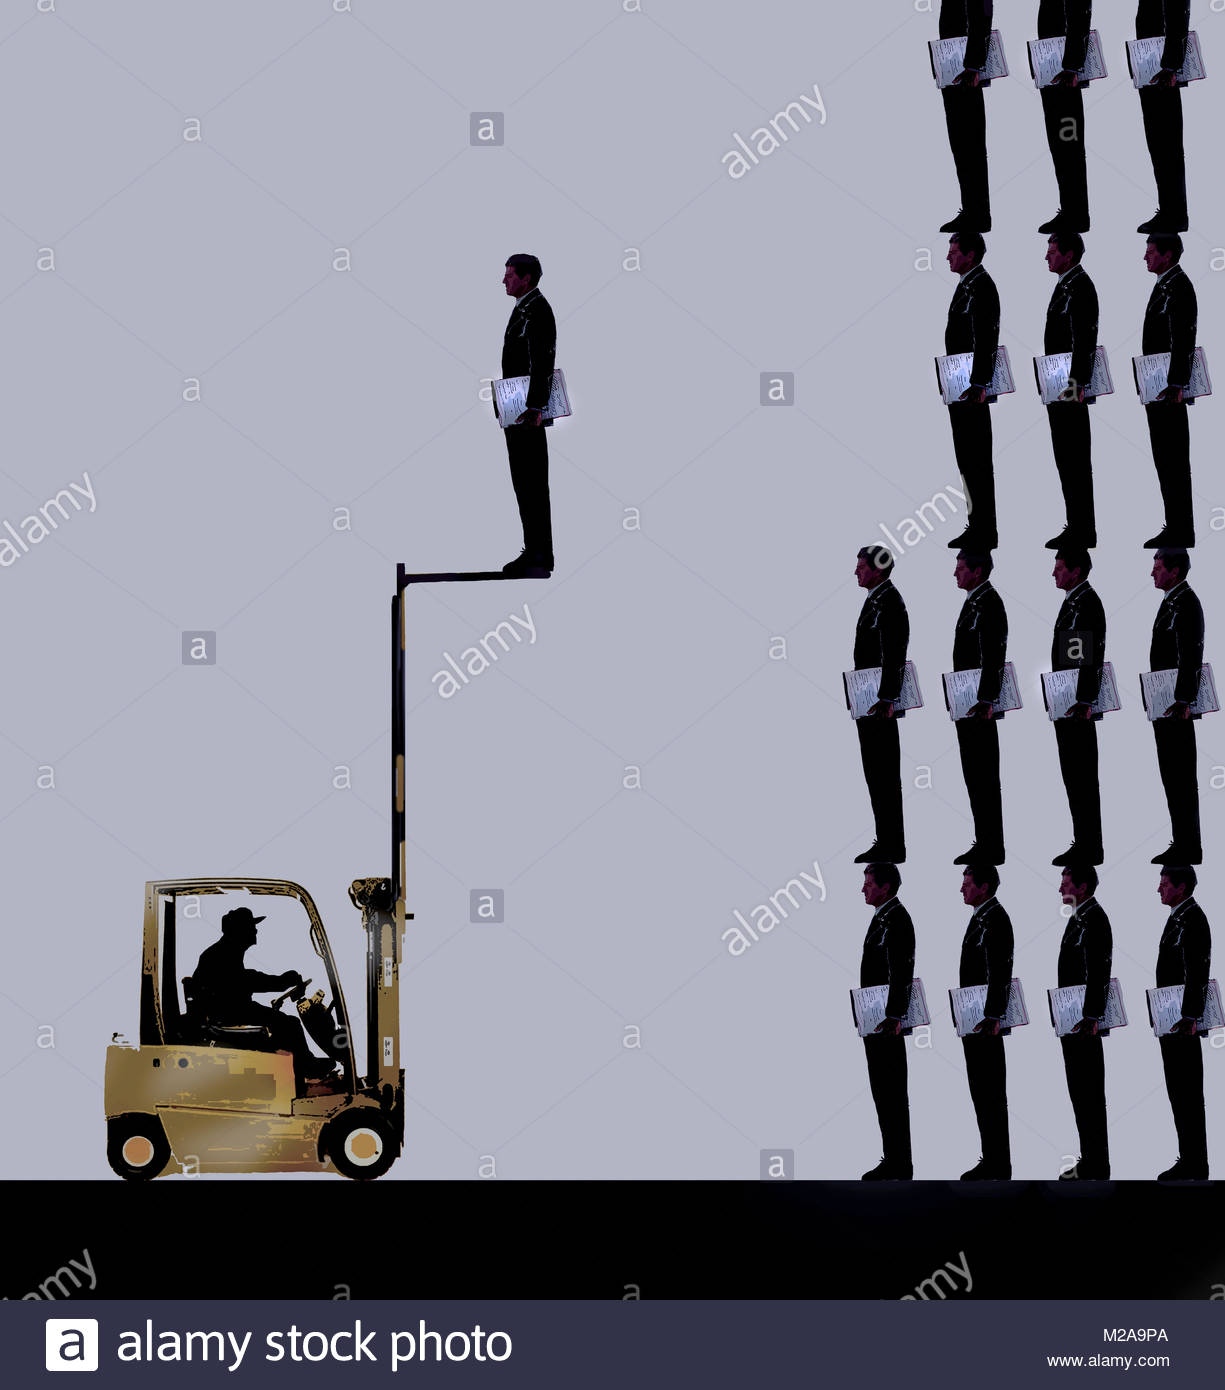 Forklift truck taking businessman from pile - Stock Image